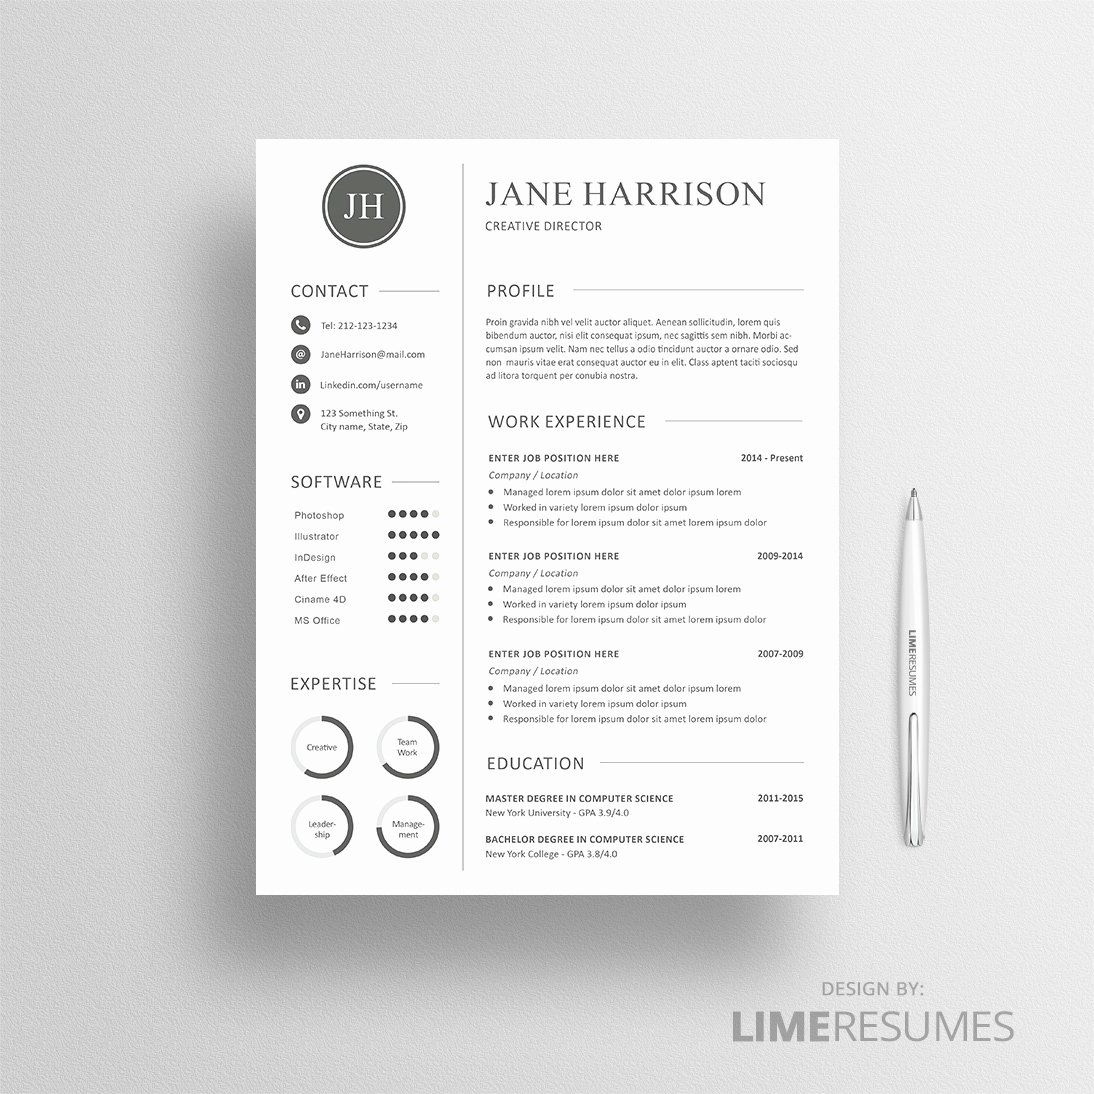 Matching Test Template Microsoft Word Beautiful Professional Cv Template Matching Cover Letter